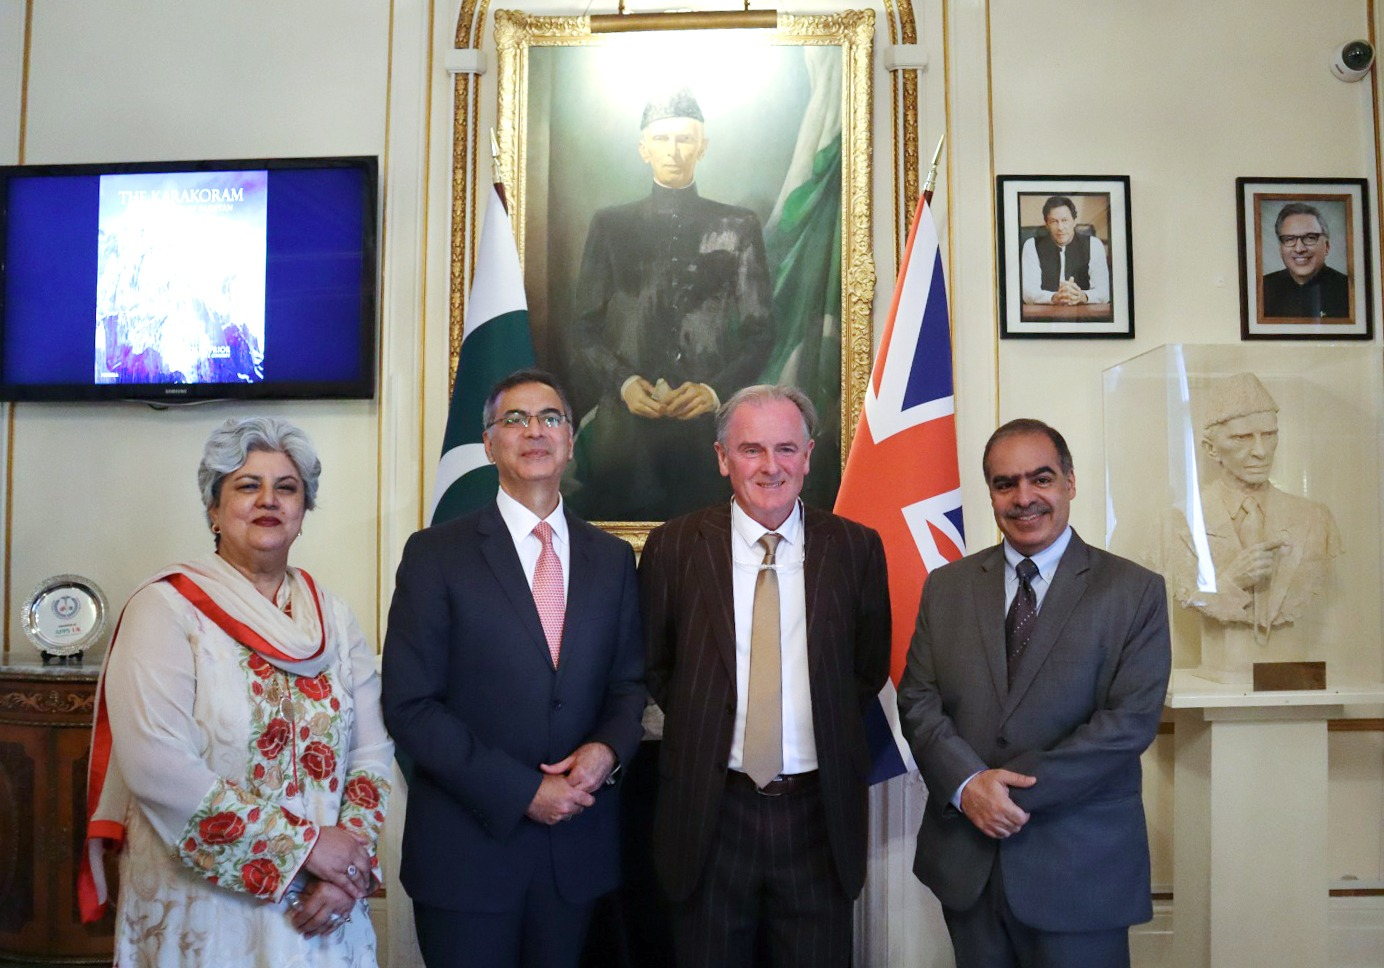 Group photo: (from left) Amb. (R) Leena Salim Moazzam, Pakistan High Commissioner to the UK, Moazzam Ahmad Khan, Photographer Colin Prior and H.E. Shaikh Fawaz bin Mohammed Al Khalifa, Ambassador of Bahrain to the UK at the book launch ceremony at Pakistan High Commission London